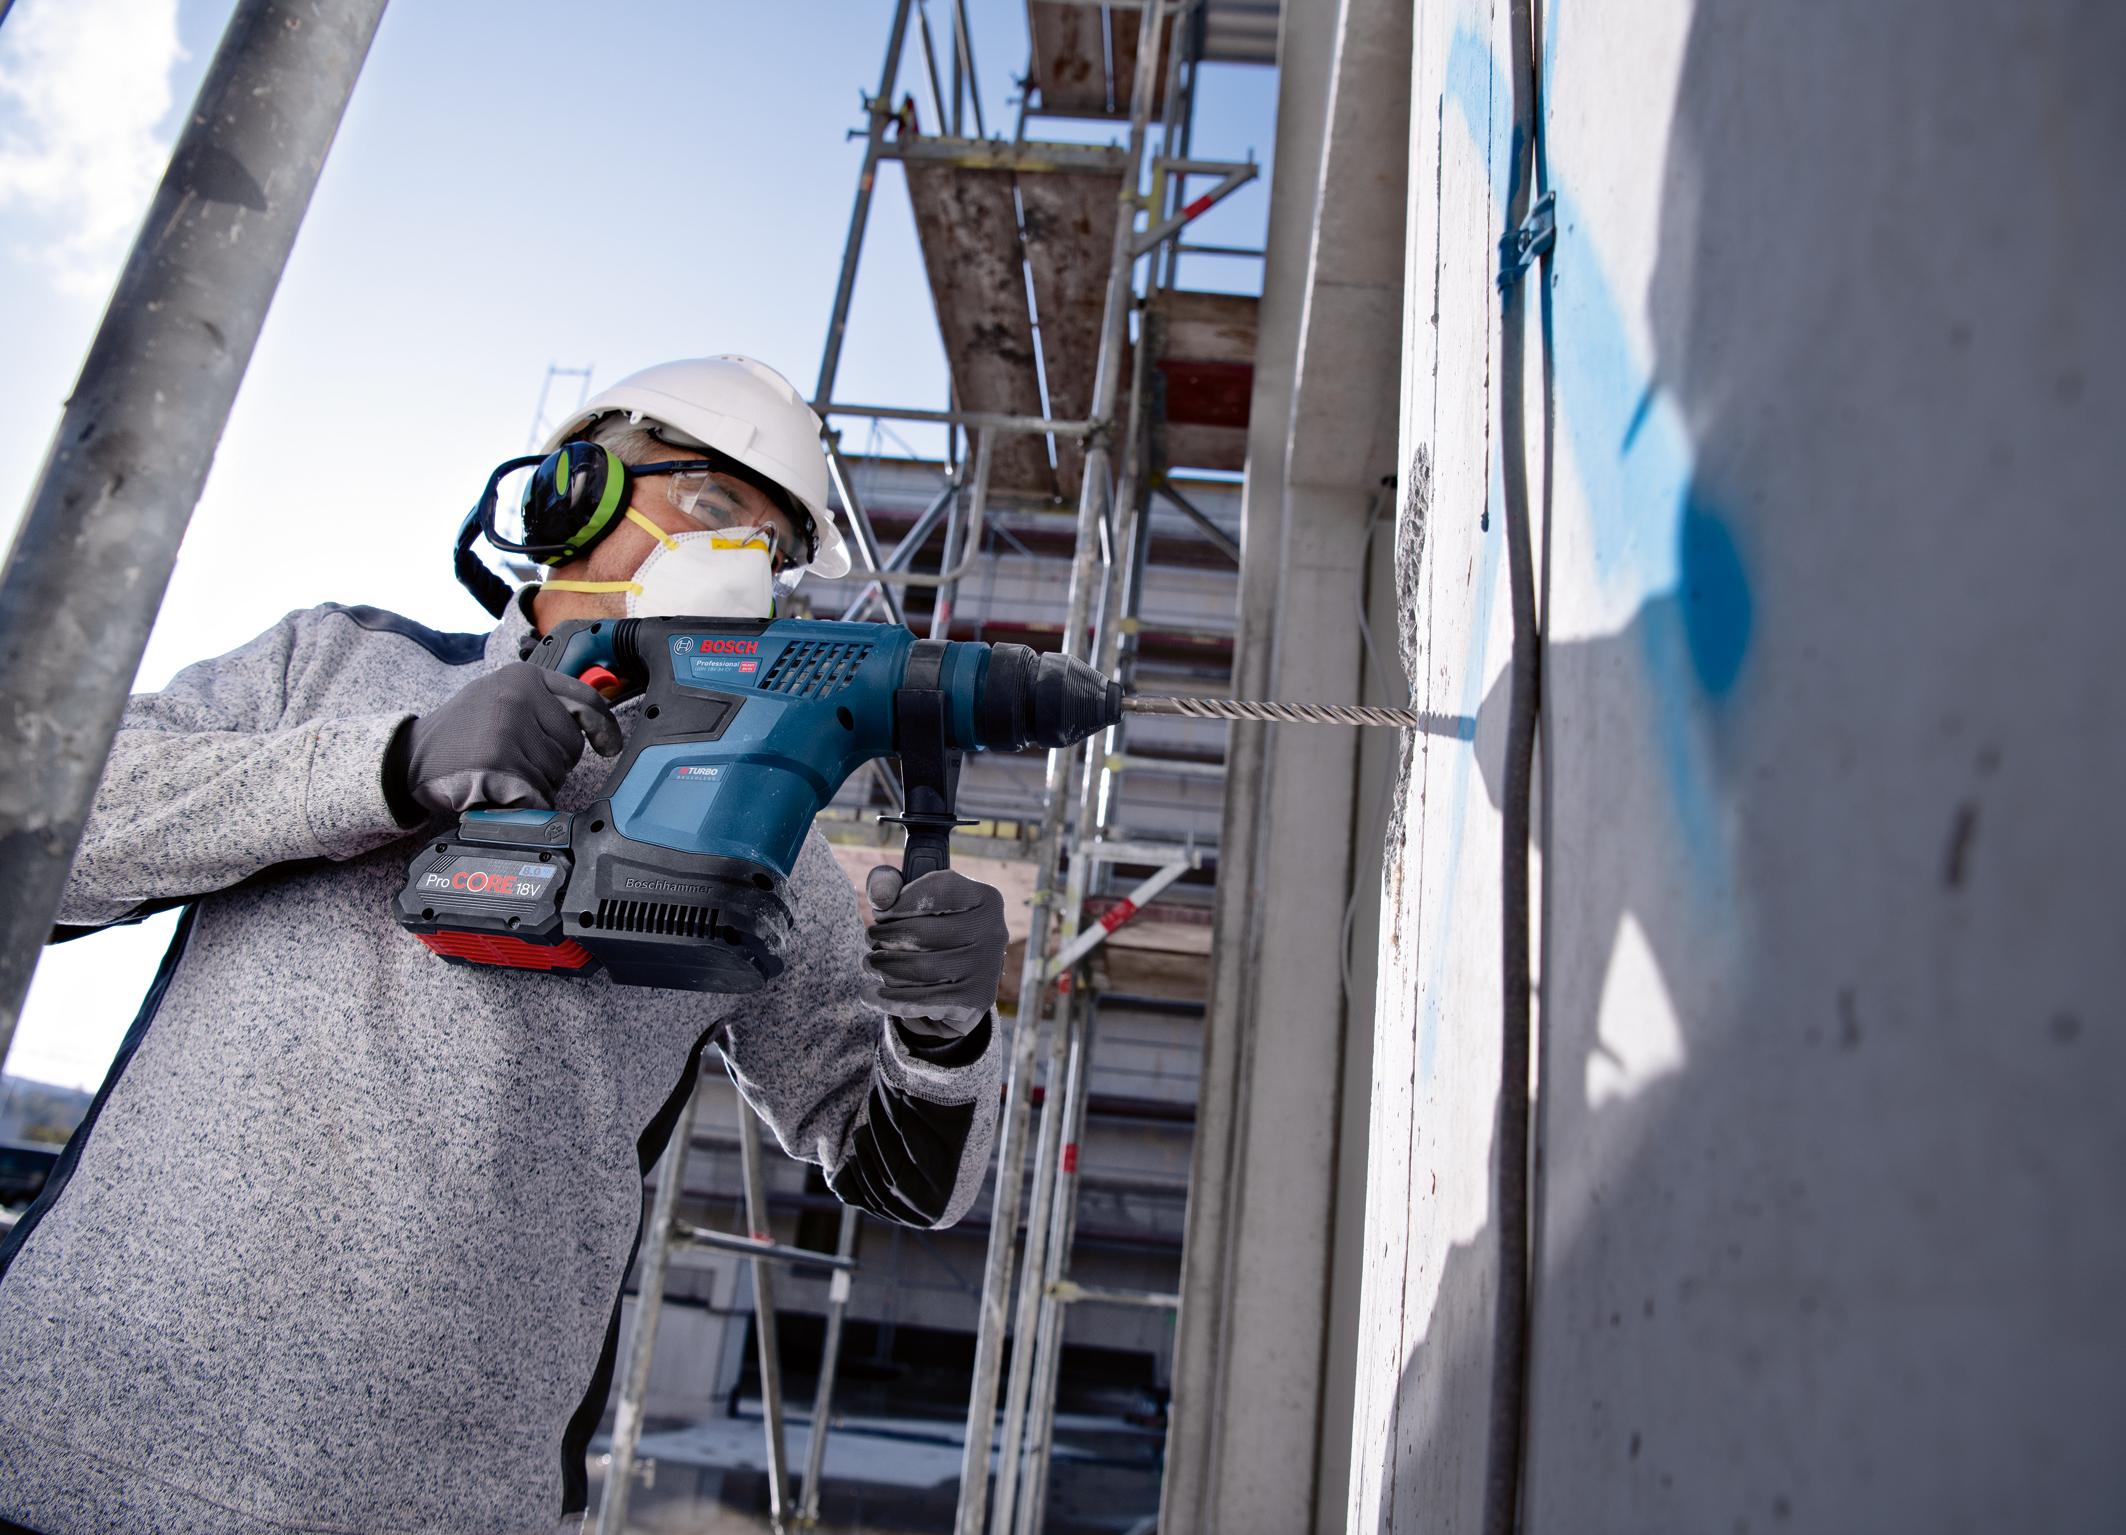 More power than ever for drilling and chiseling: New Biturbo hammer from Bosch for professionals